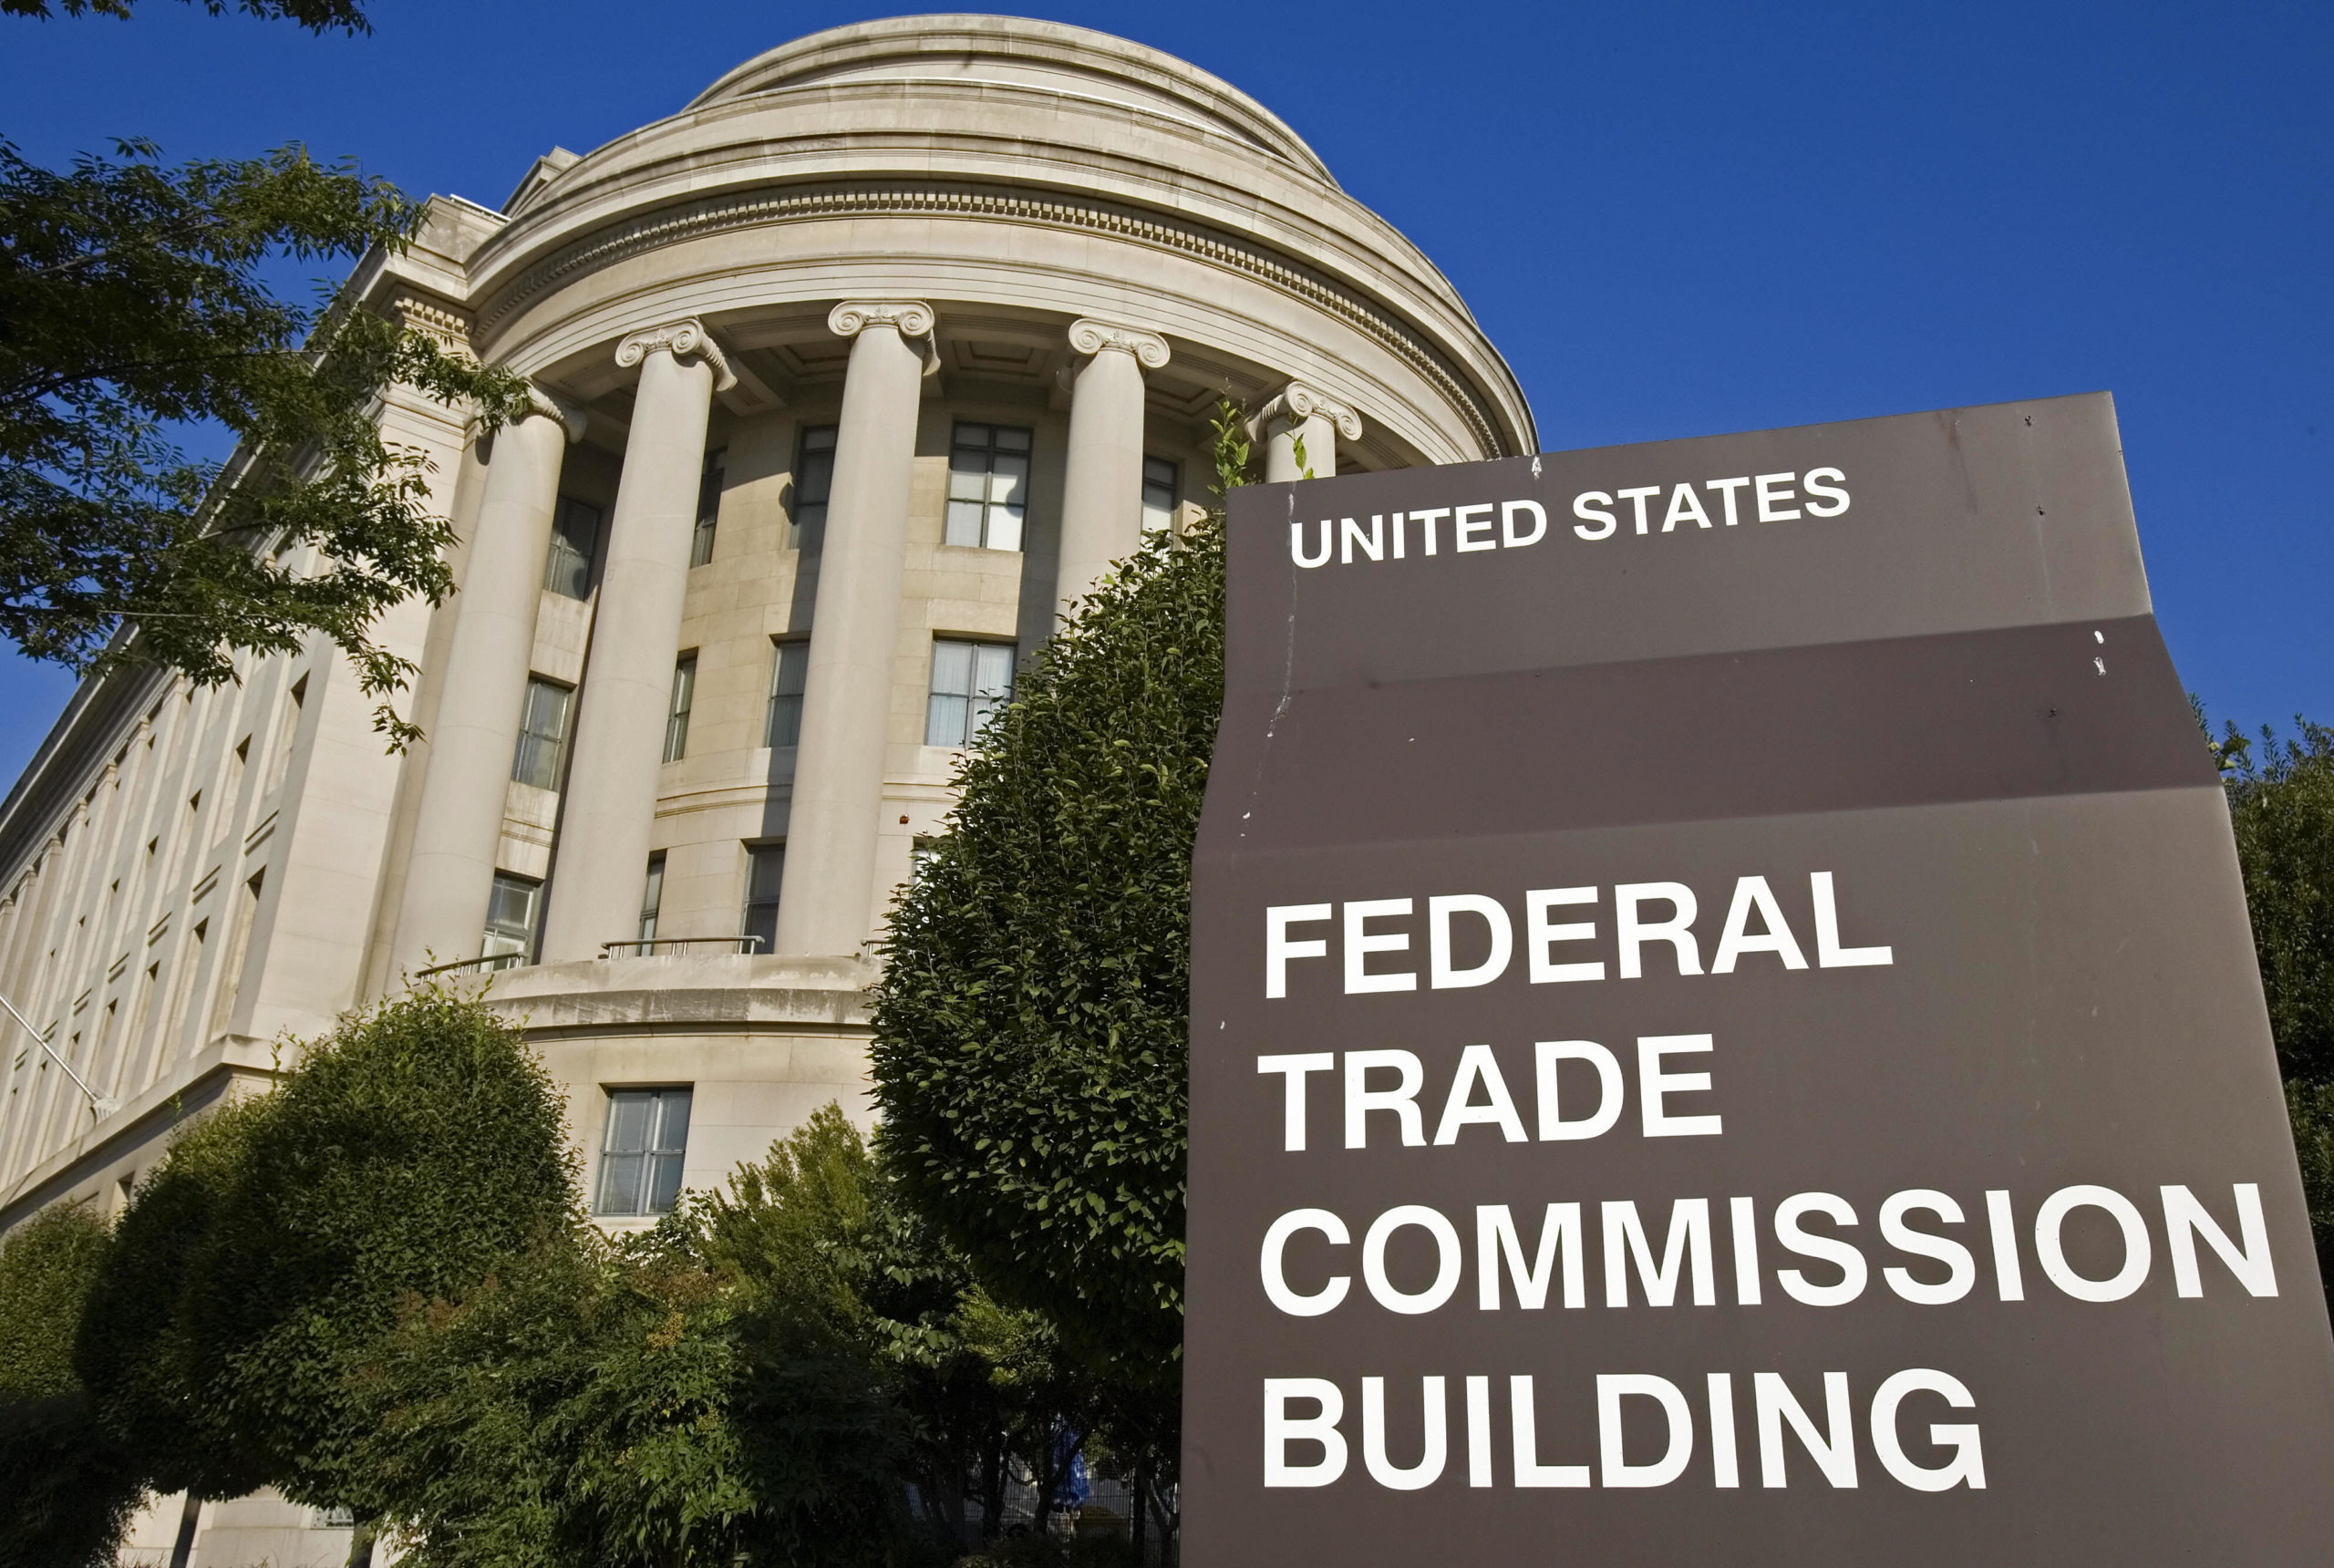 The US Federal Trade Commission (FTC) building is seen 19 September 2006 in Washington, DC. (Photo by PAUL J. RICHARDS/AFP via Getty Images)